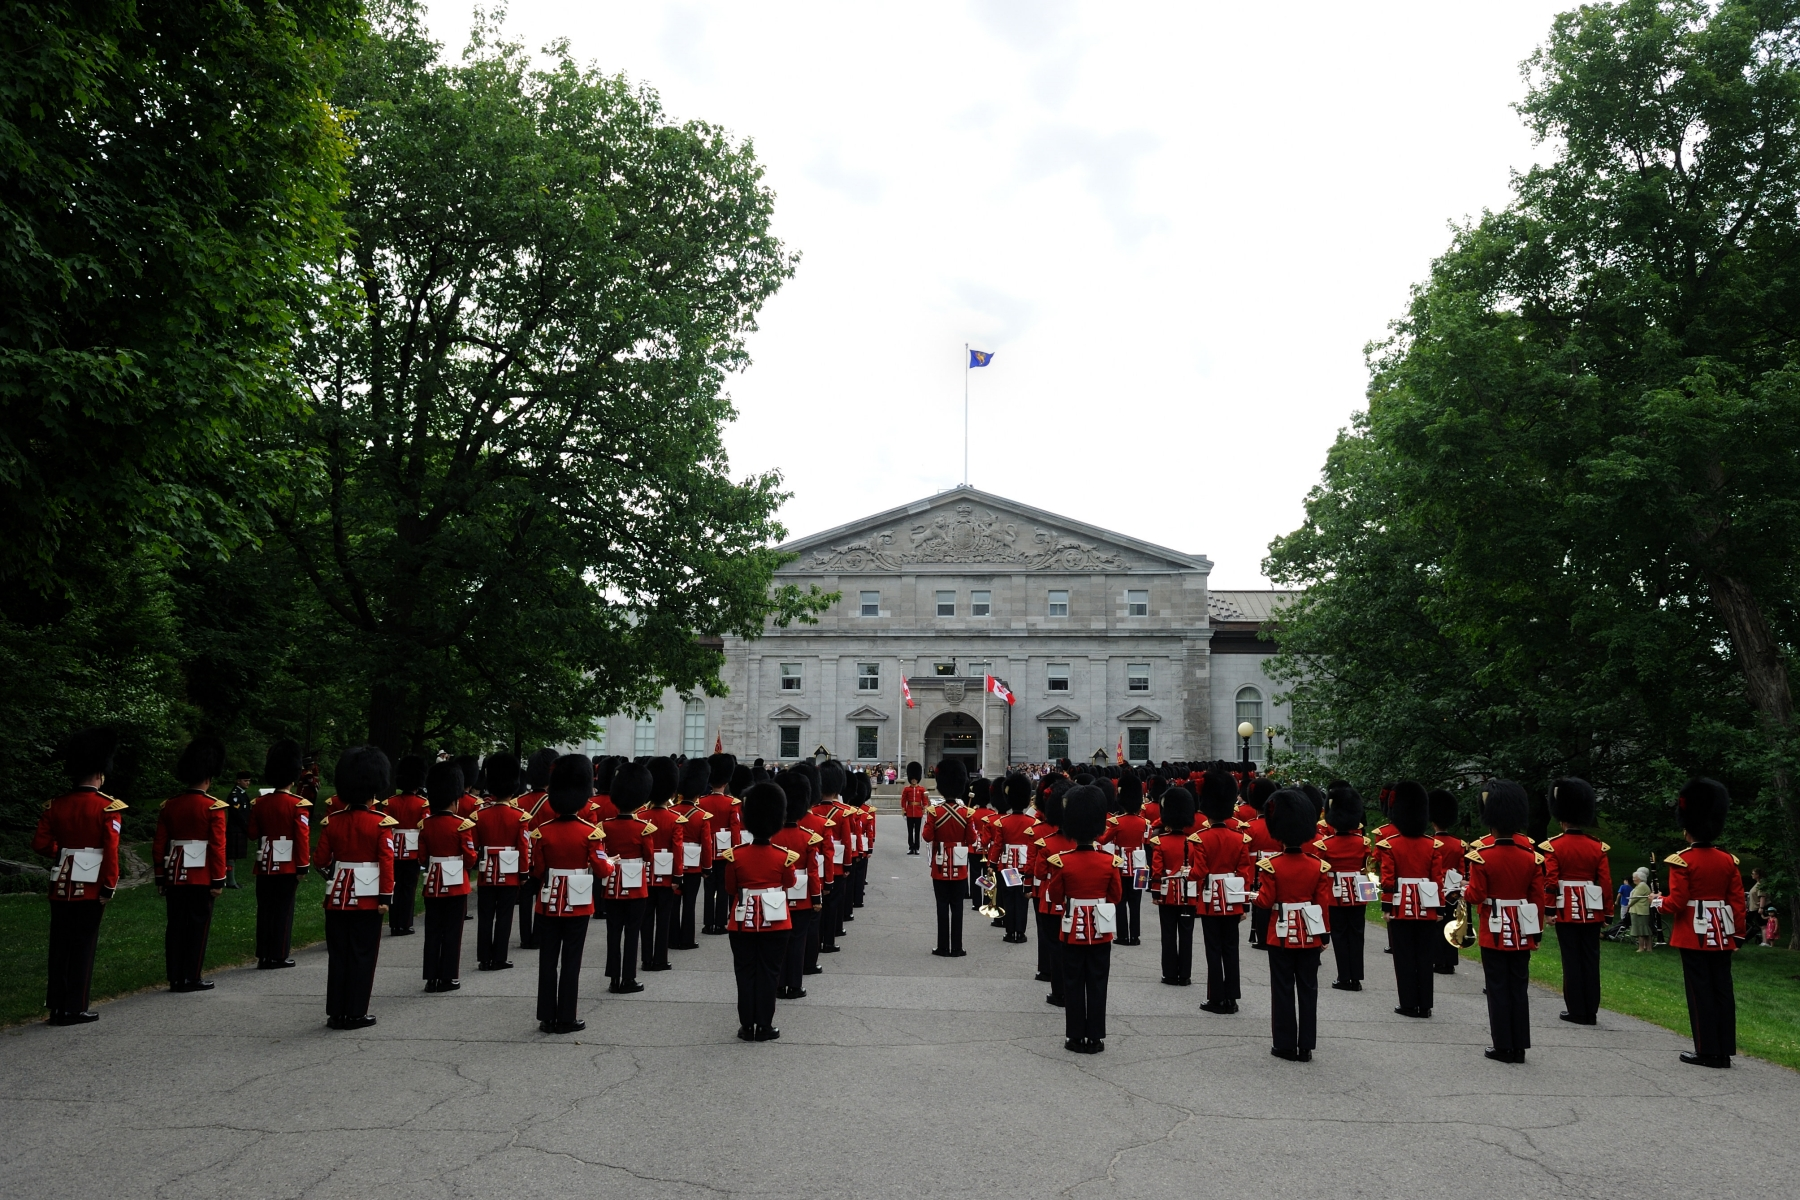 In addition to sentry duty at Rideau Hall, they perform in the daily Changing of the Guard ceremony on Parliament Hill; in the mounting of guards of honour during visits by dignitaries; and in public concerts, military functions or other ceremonies throughout the National Capital Region.